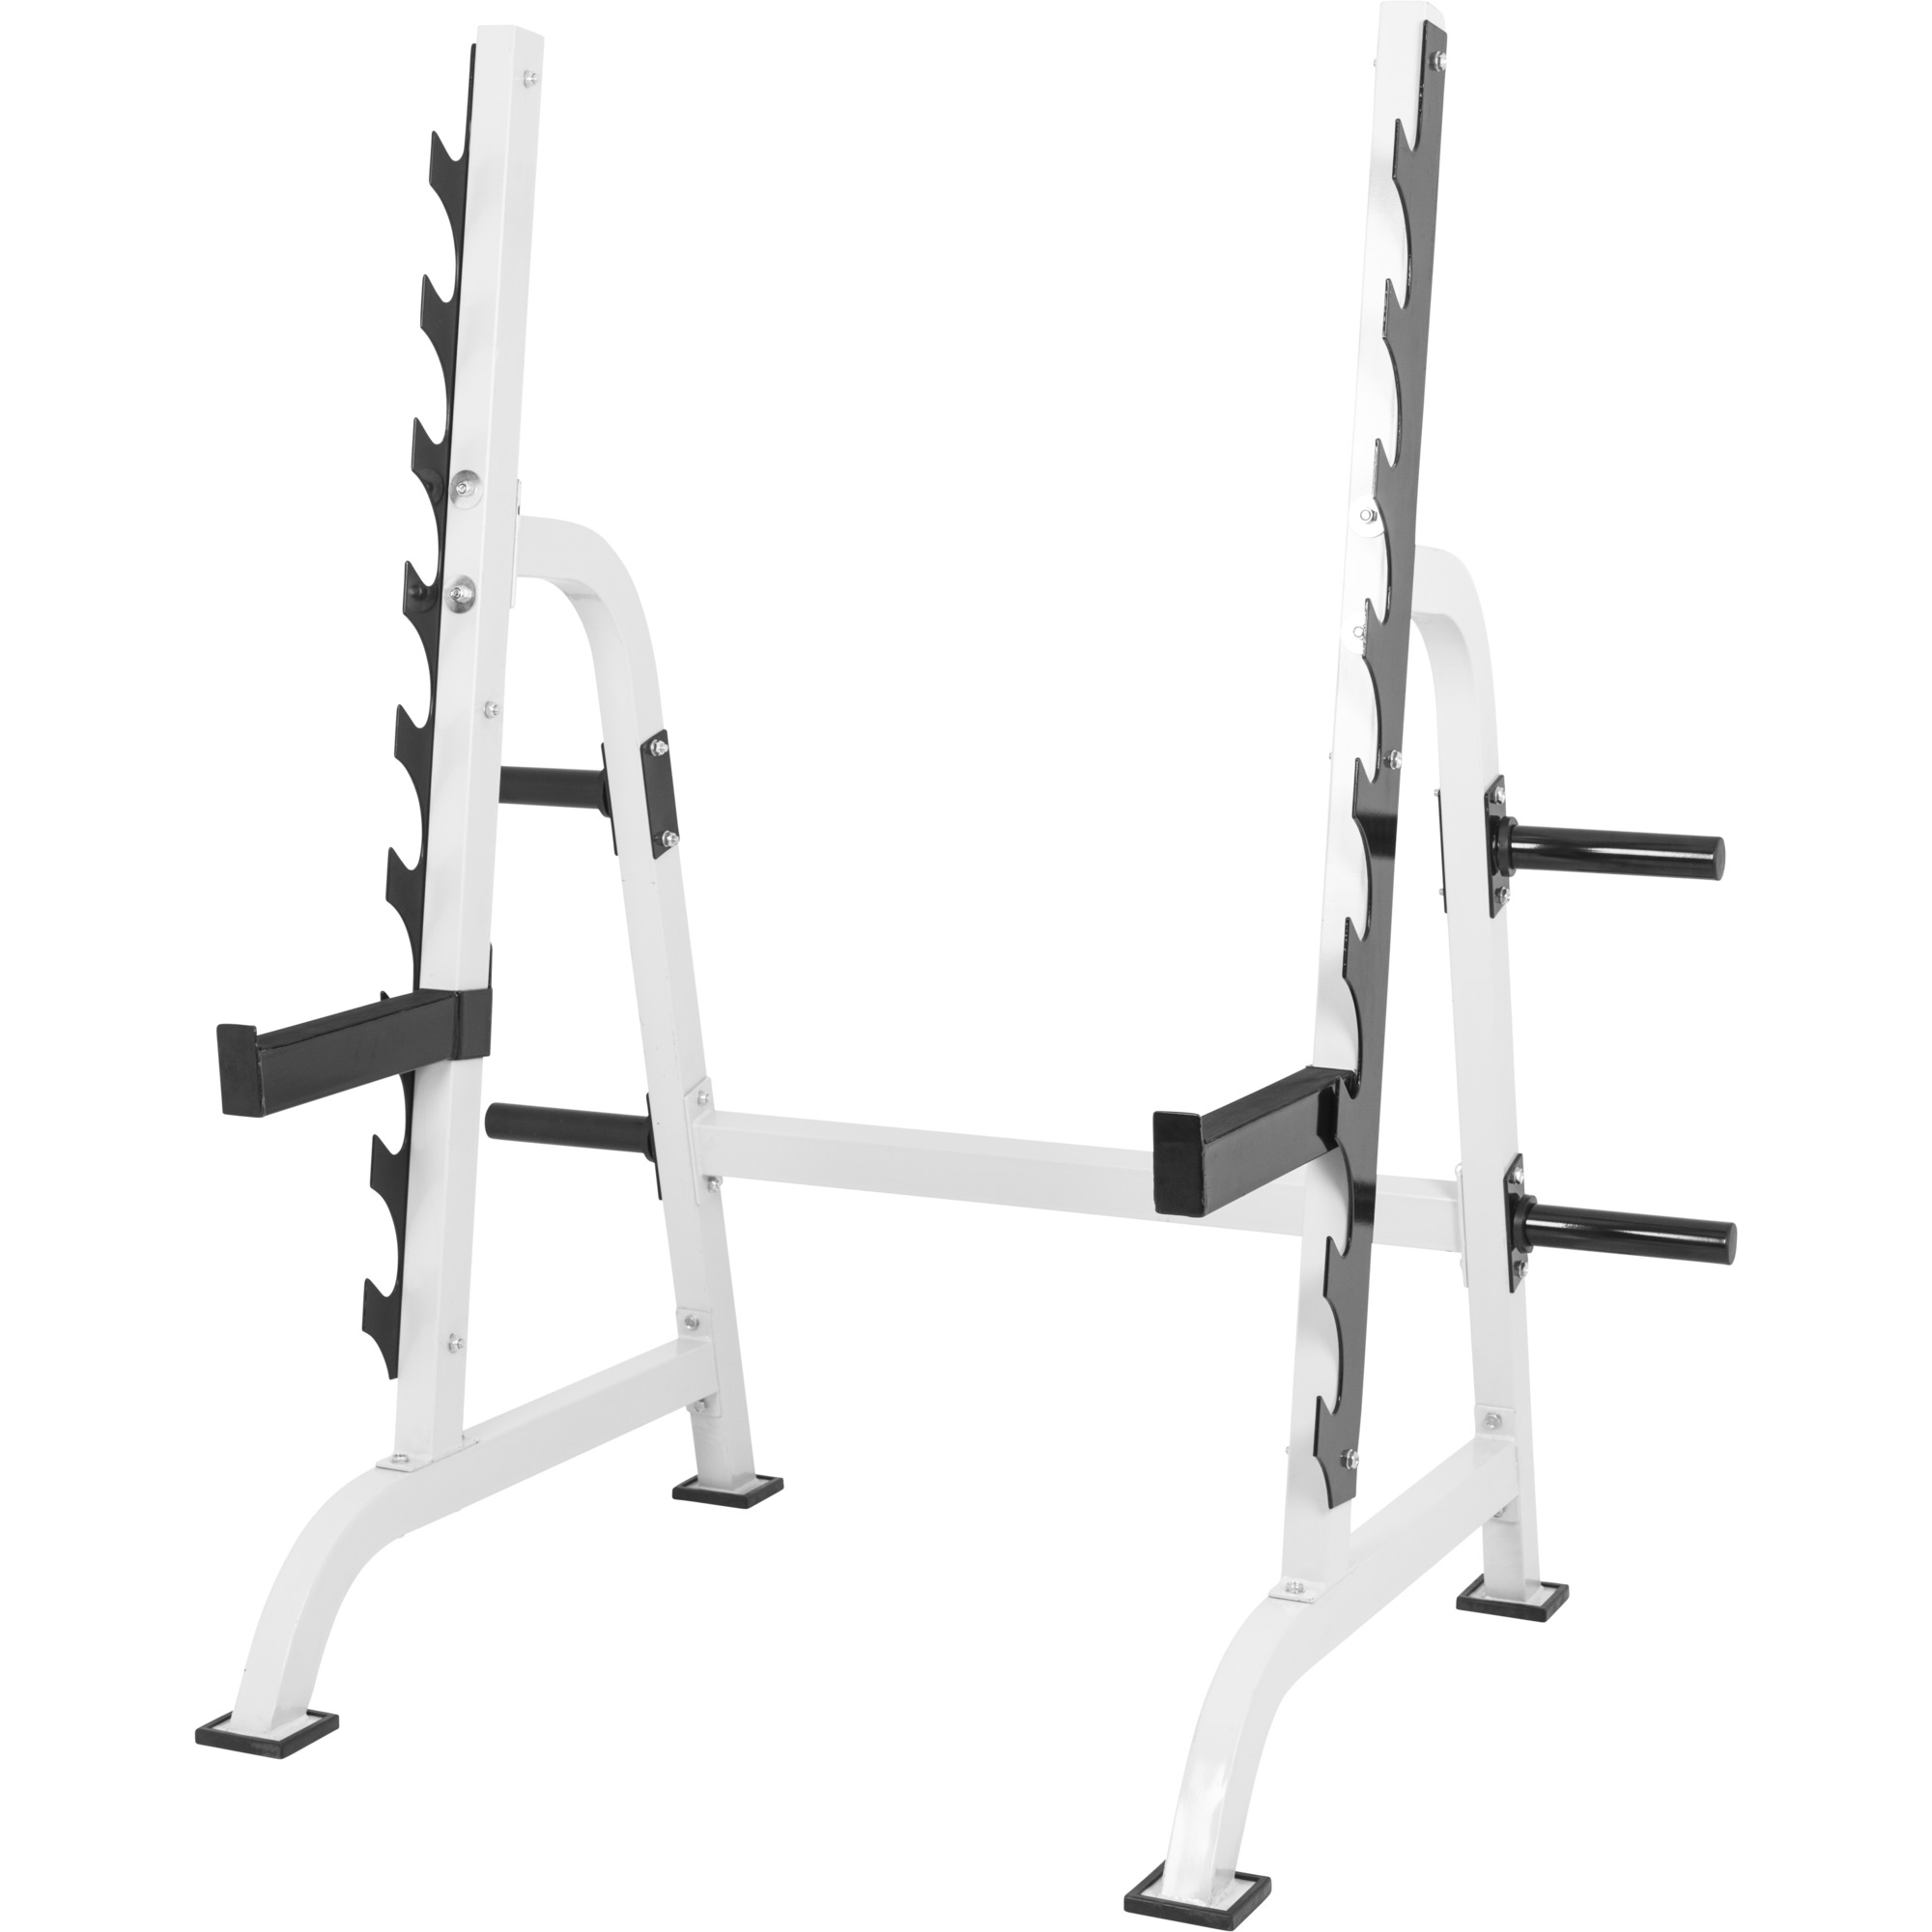 Power Squat Rack bei Gorillasports - Bodybuilding